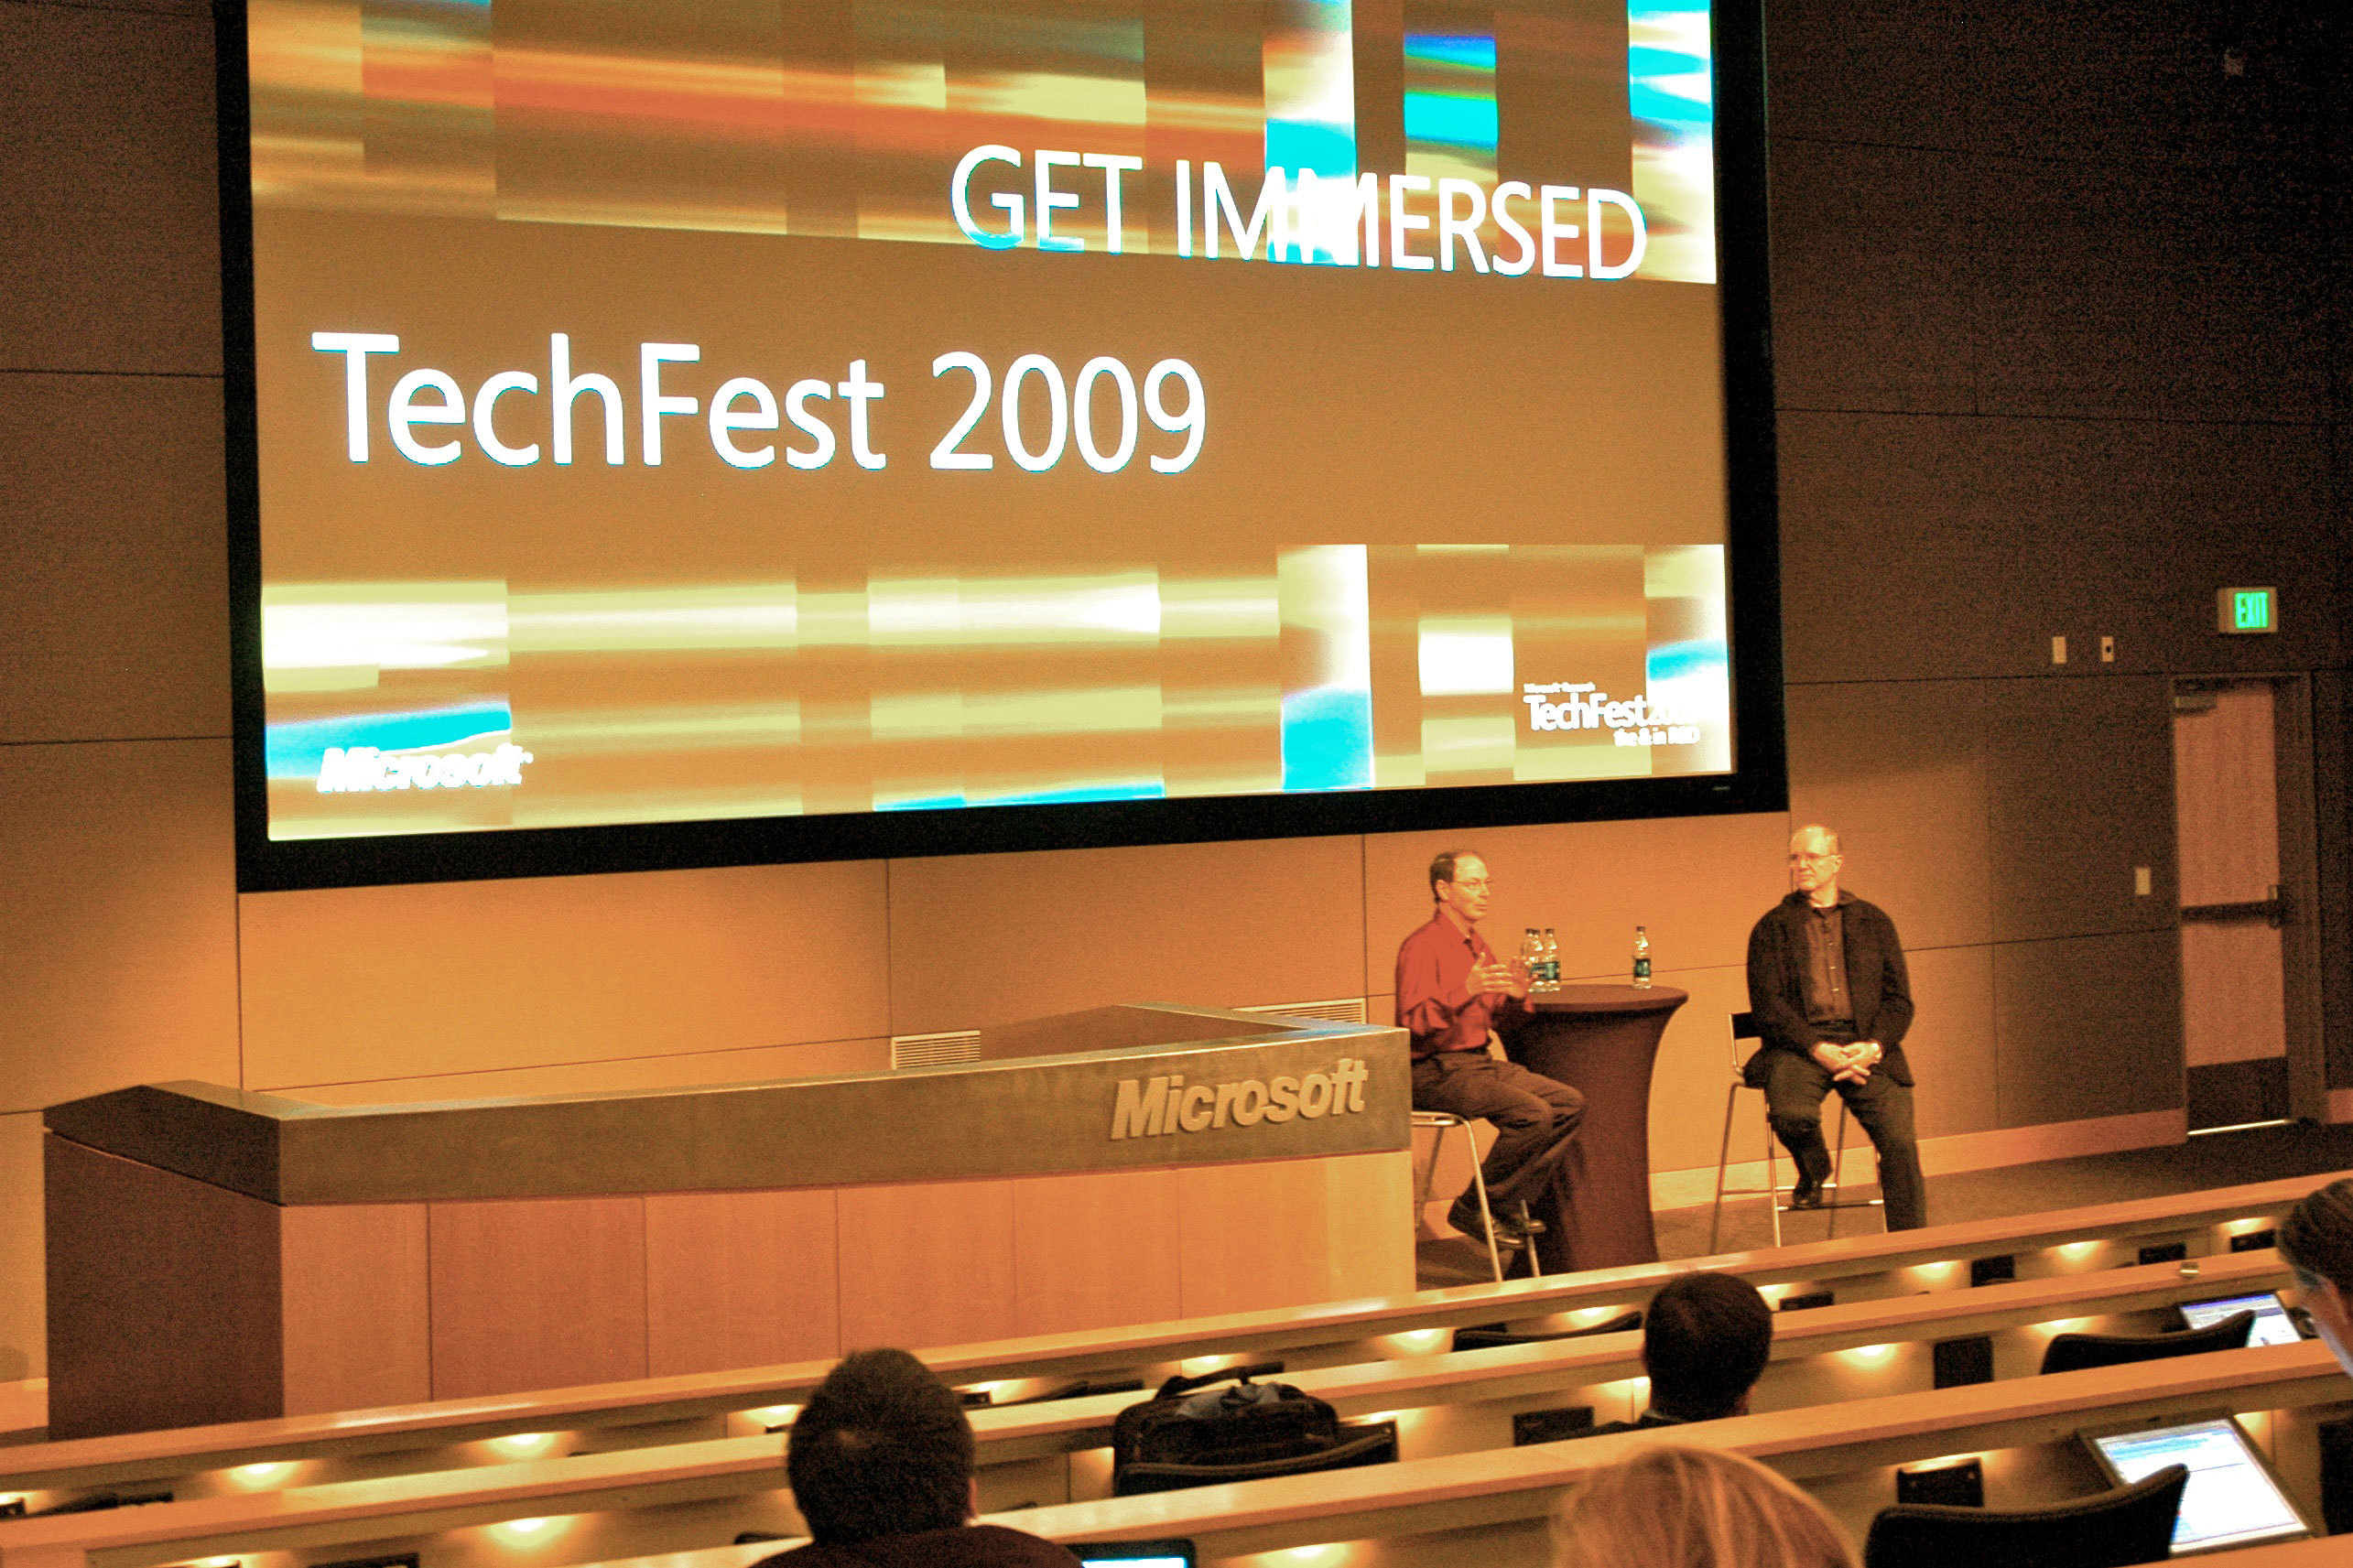 Rick Rashid (left) Senior Vice President of MSR, and Craig Mundie (right) Microsoft's Chief Research and Strategy Officer, speaking about new research at at TechFest 2009.